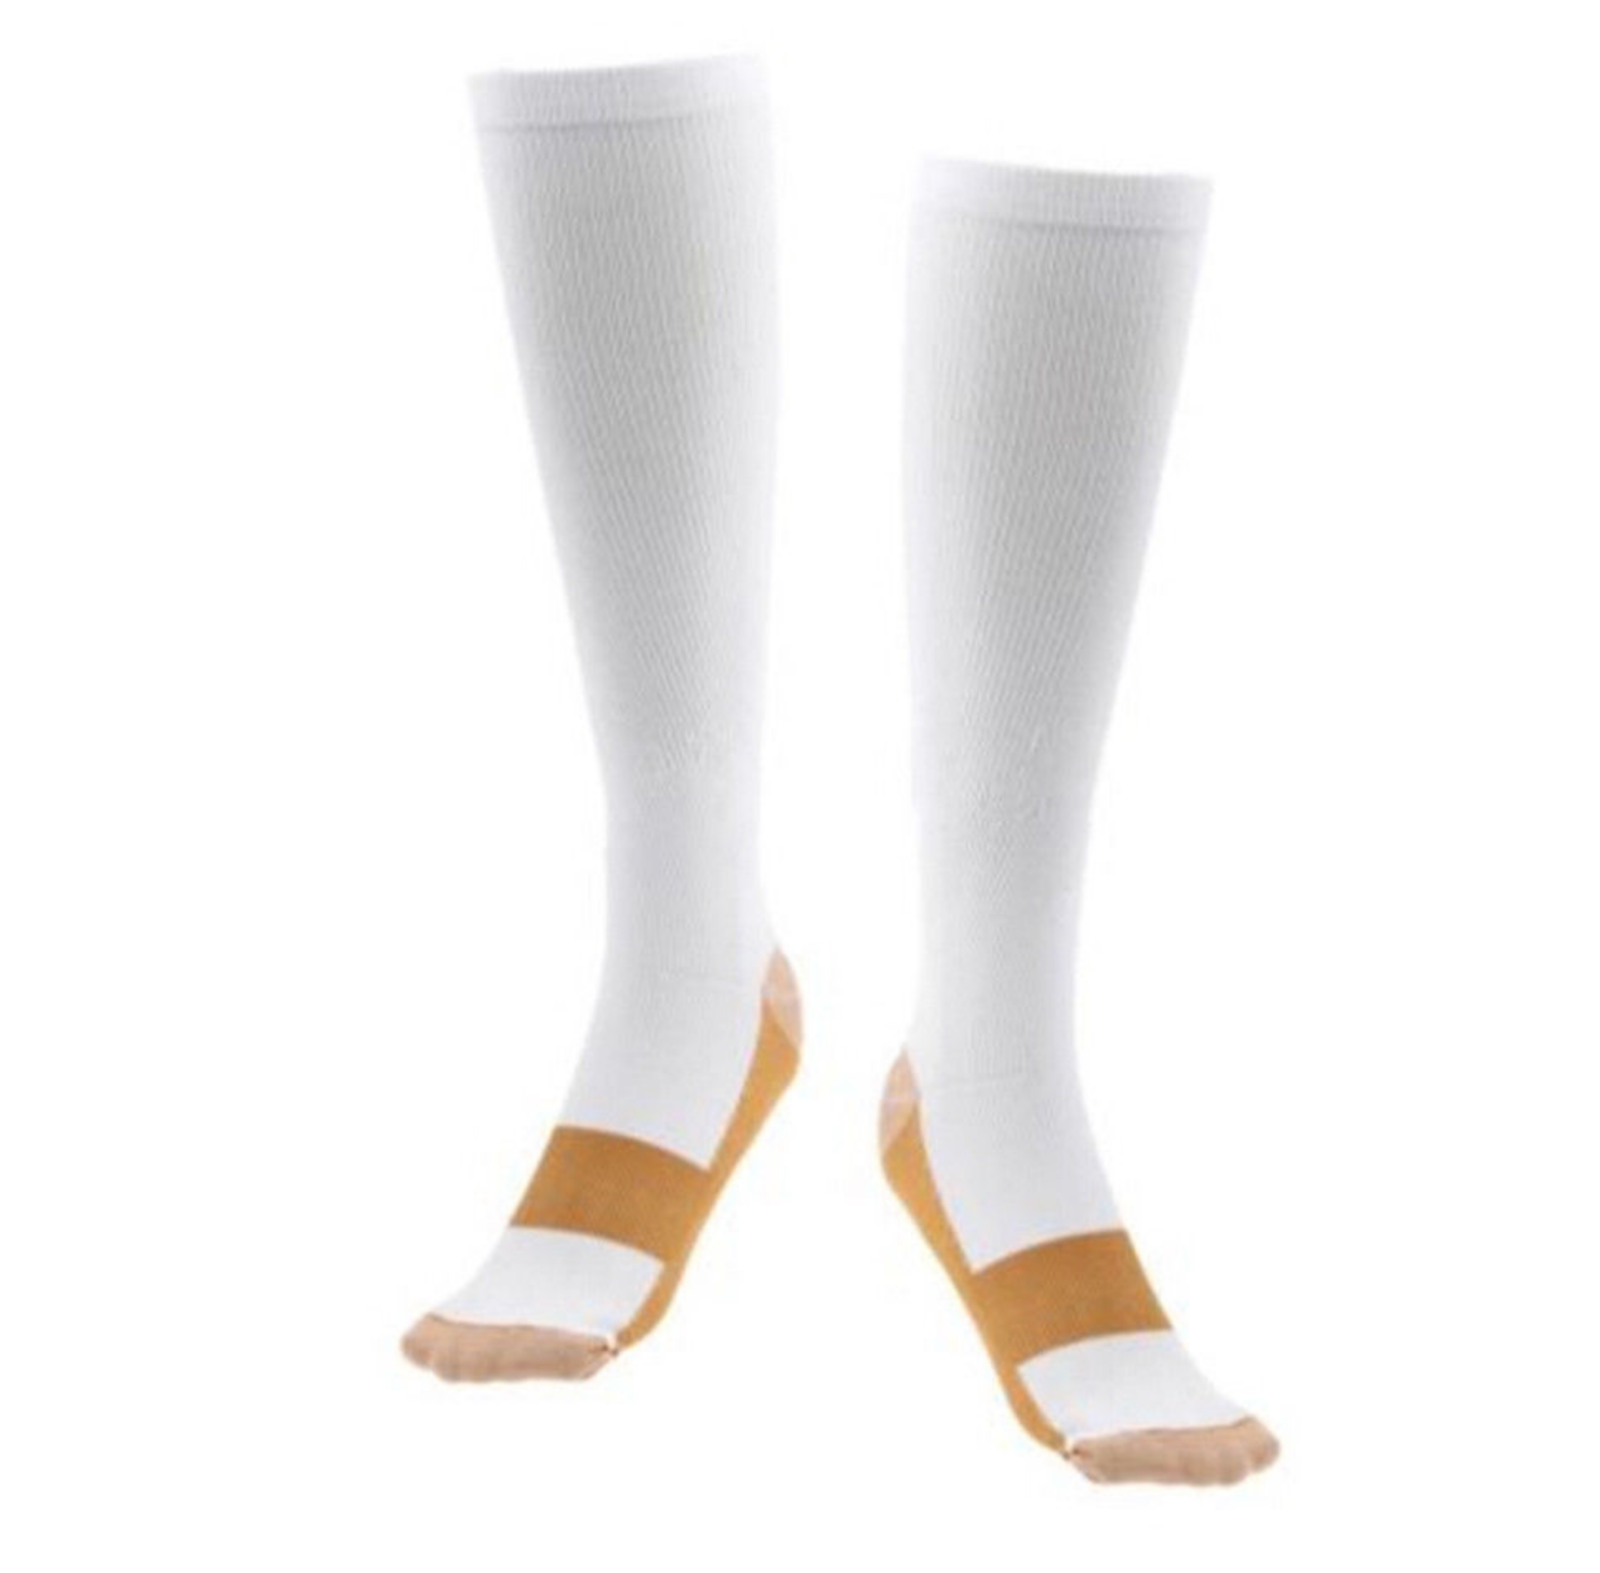 (5 Pairs) Copper Compression 20-30mmHg Graduated Support Socks Mens Womens S-XXL 8